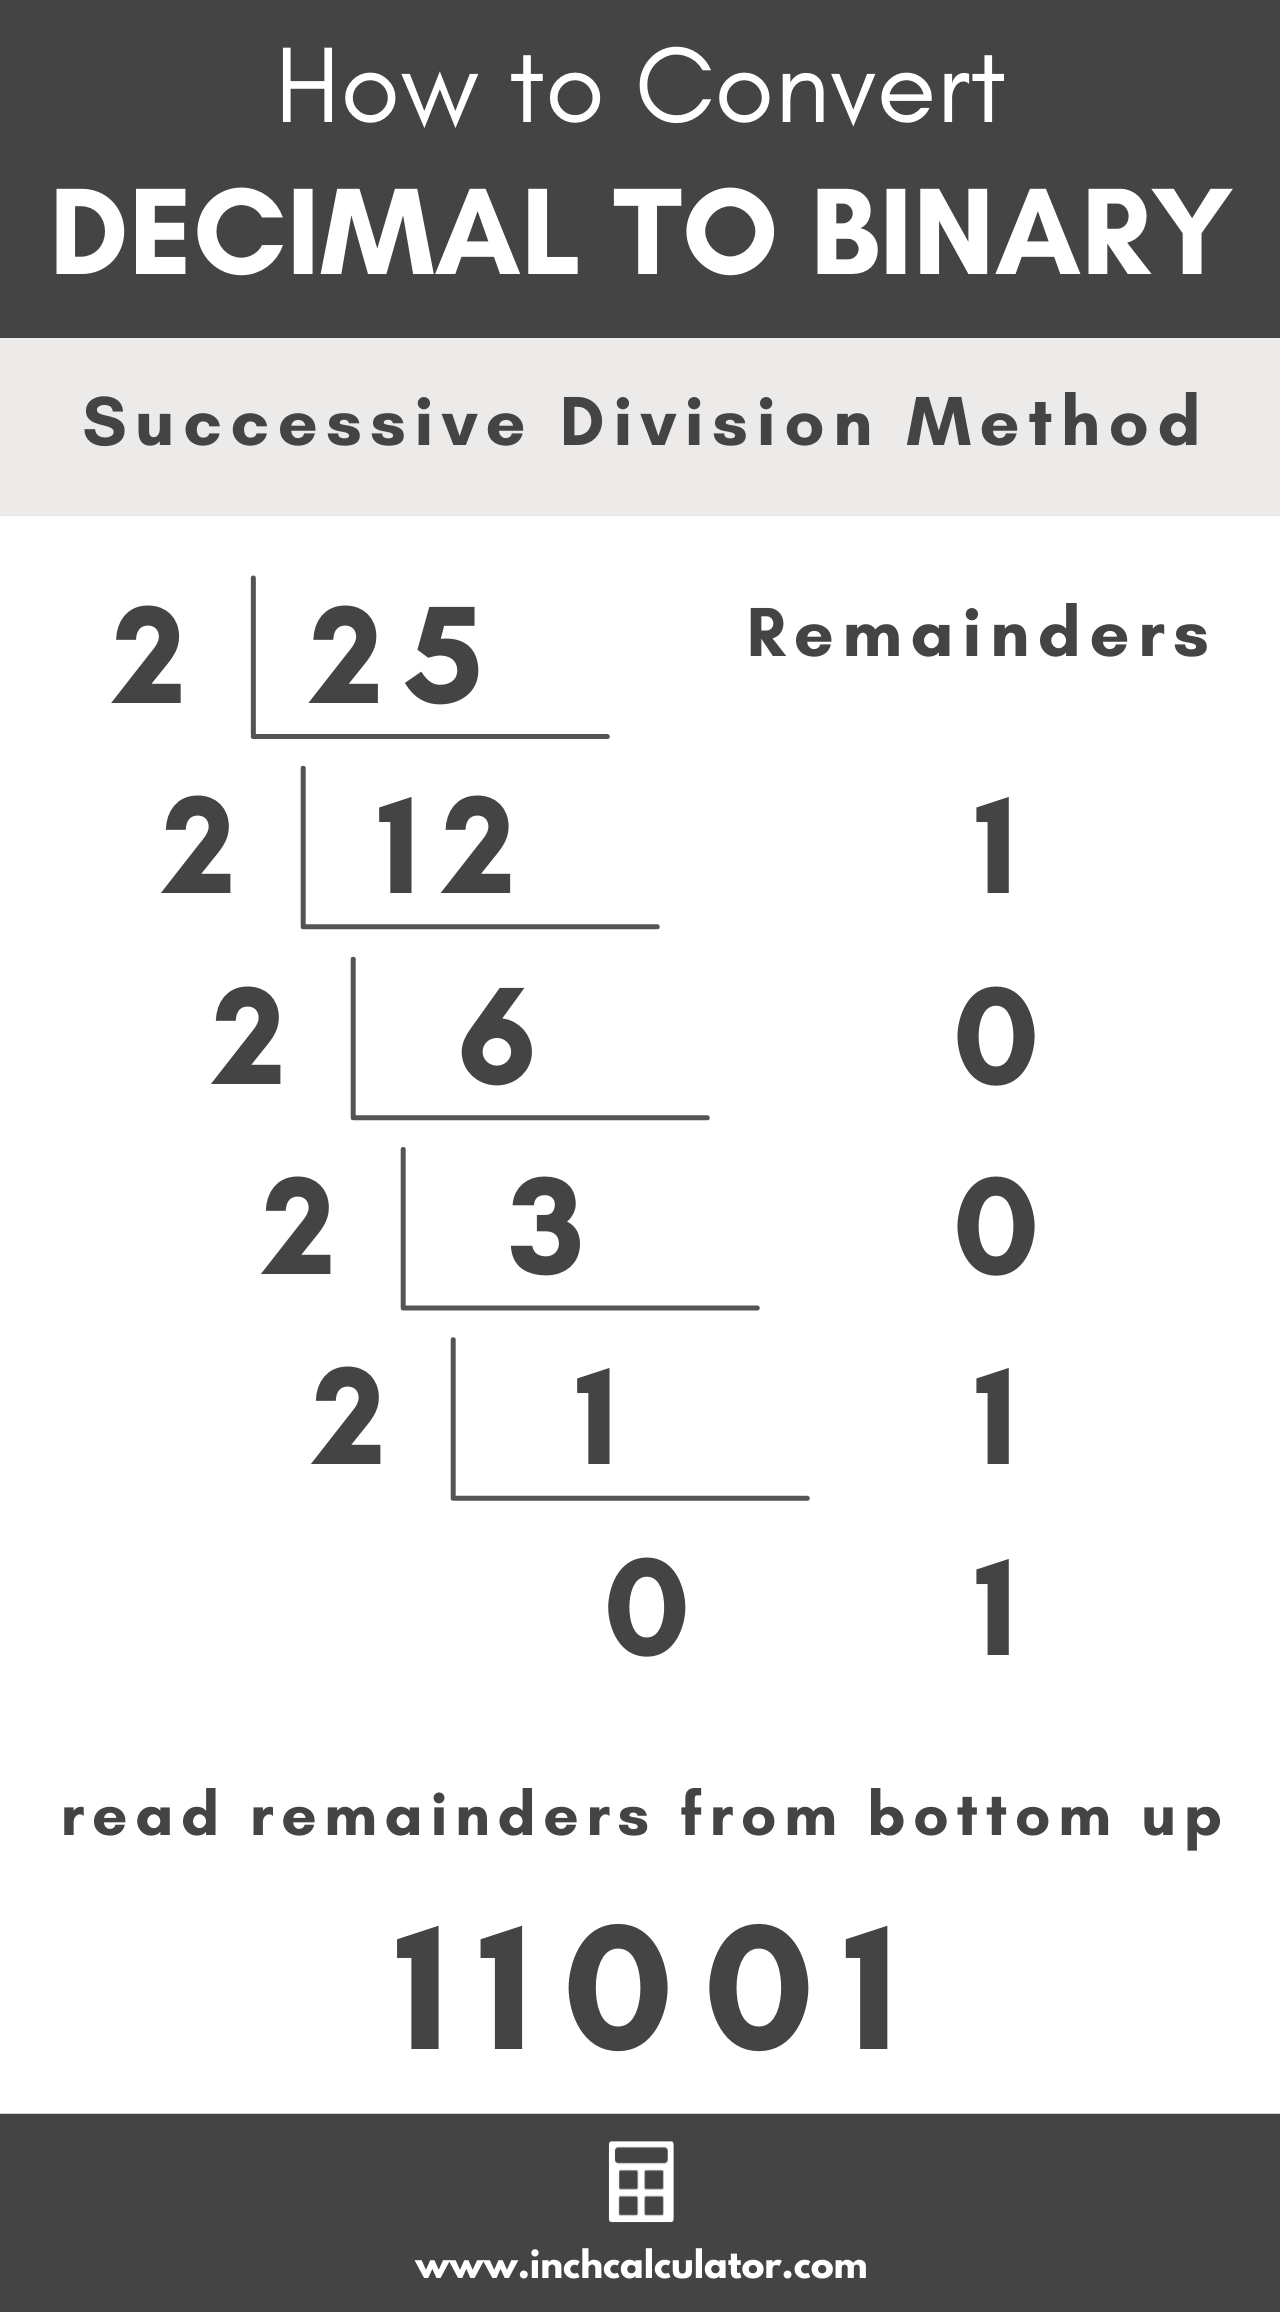 graphic showing how to convert a decimal number to binary